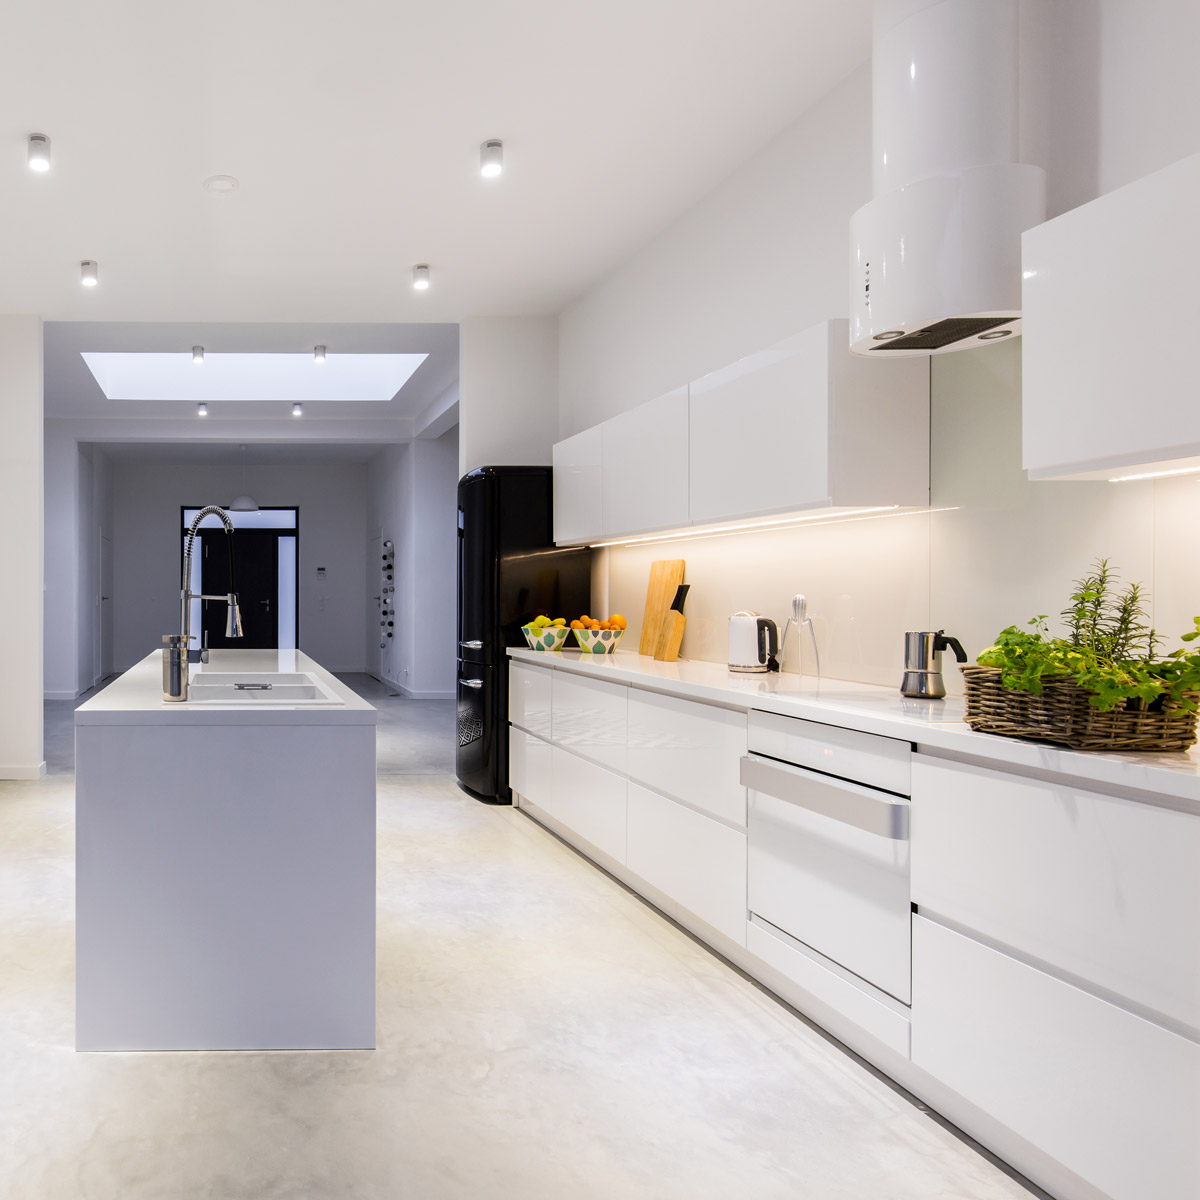 bright-kitchen-with-kitchen-island-P4BQZGS